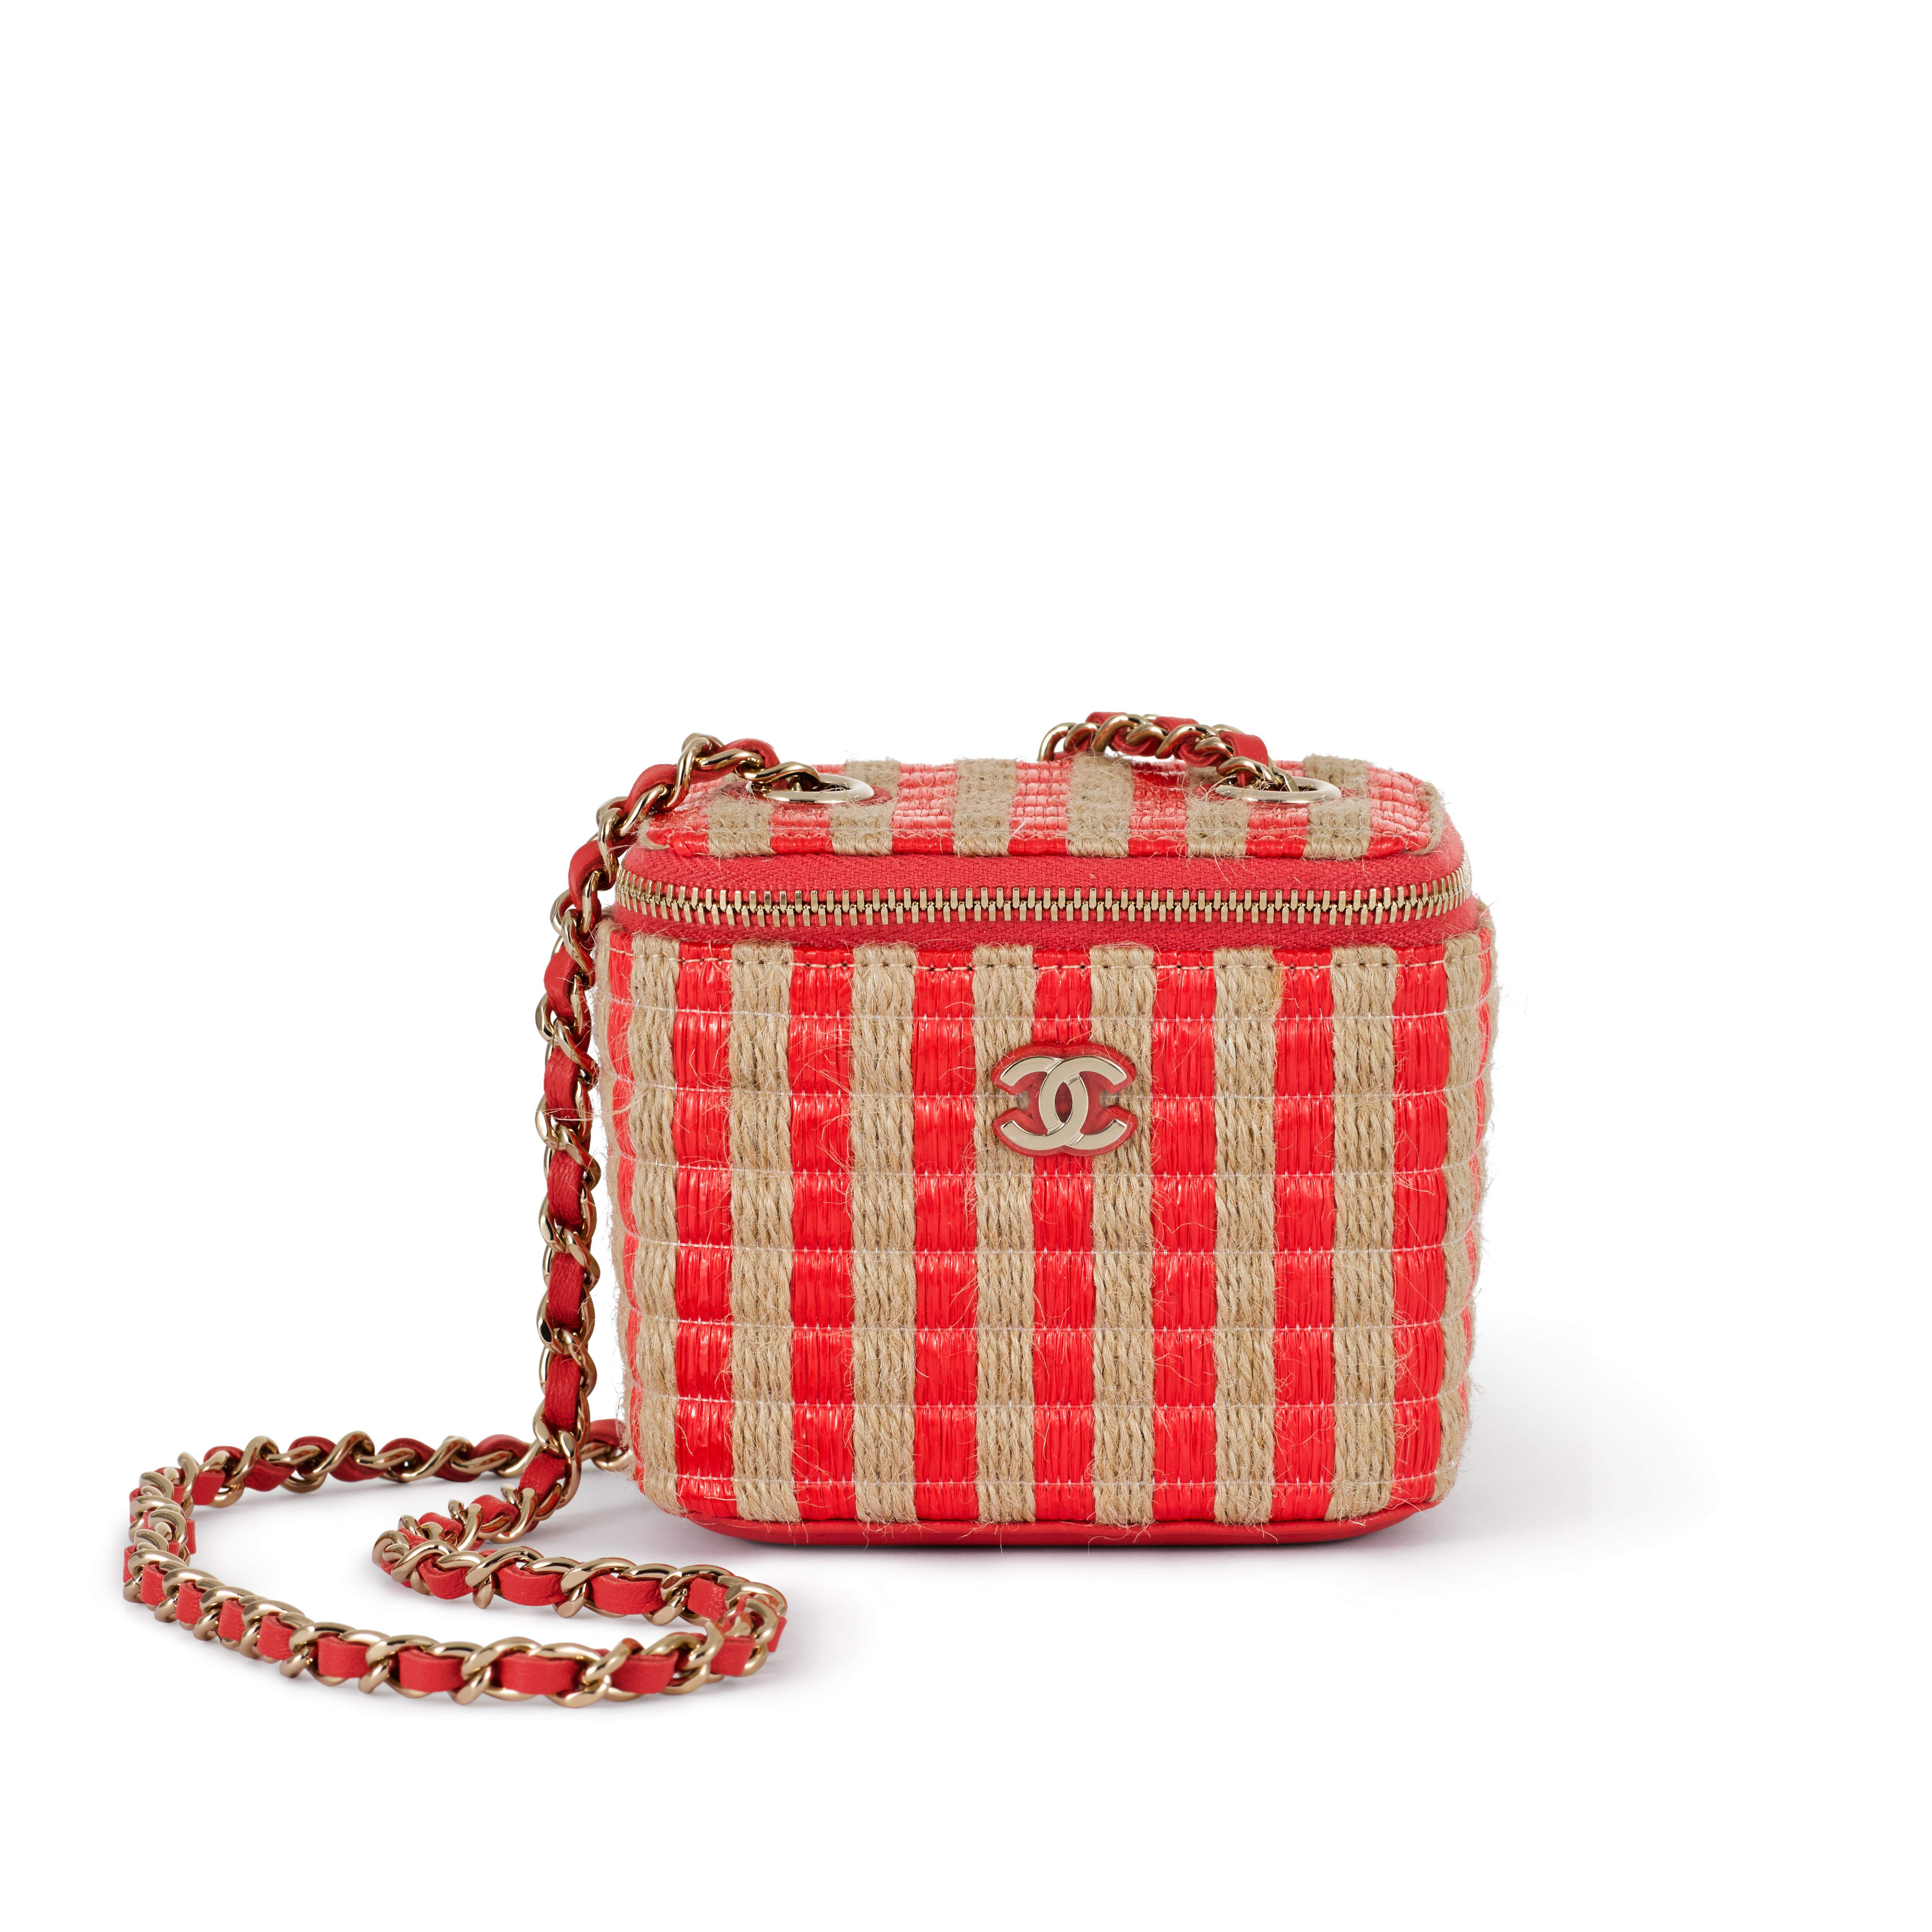 View full screen - View 1 of Lot 70. Red and Beige Raffia and Jute Thread Mini Vanity Gold Hardware, 2021.